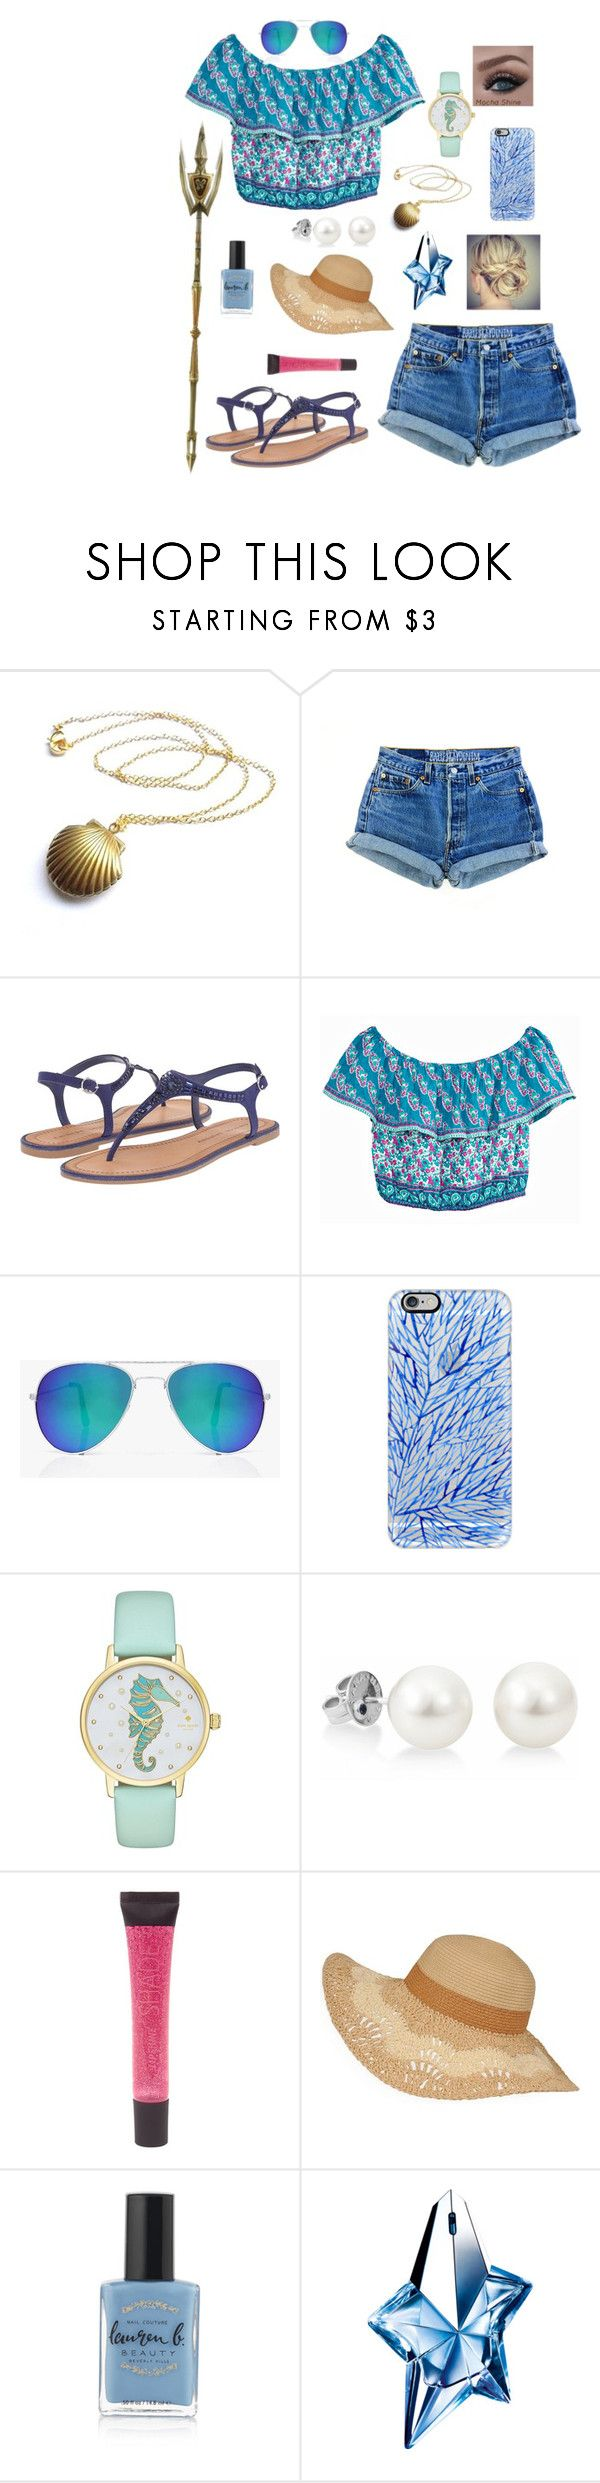 """Cabin 3: Poseidon"" by ruthw422 ❤ liked on Polyvore featuring Chinese Laundry, Calypso St. Barth, Boohoo, Casetify, Kate Spade, Lane Bryant, Lauren B. Beauty, Thierry Mugler, beach and percyjackson"